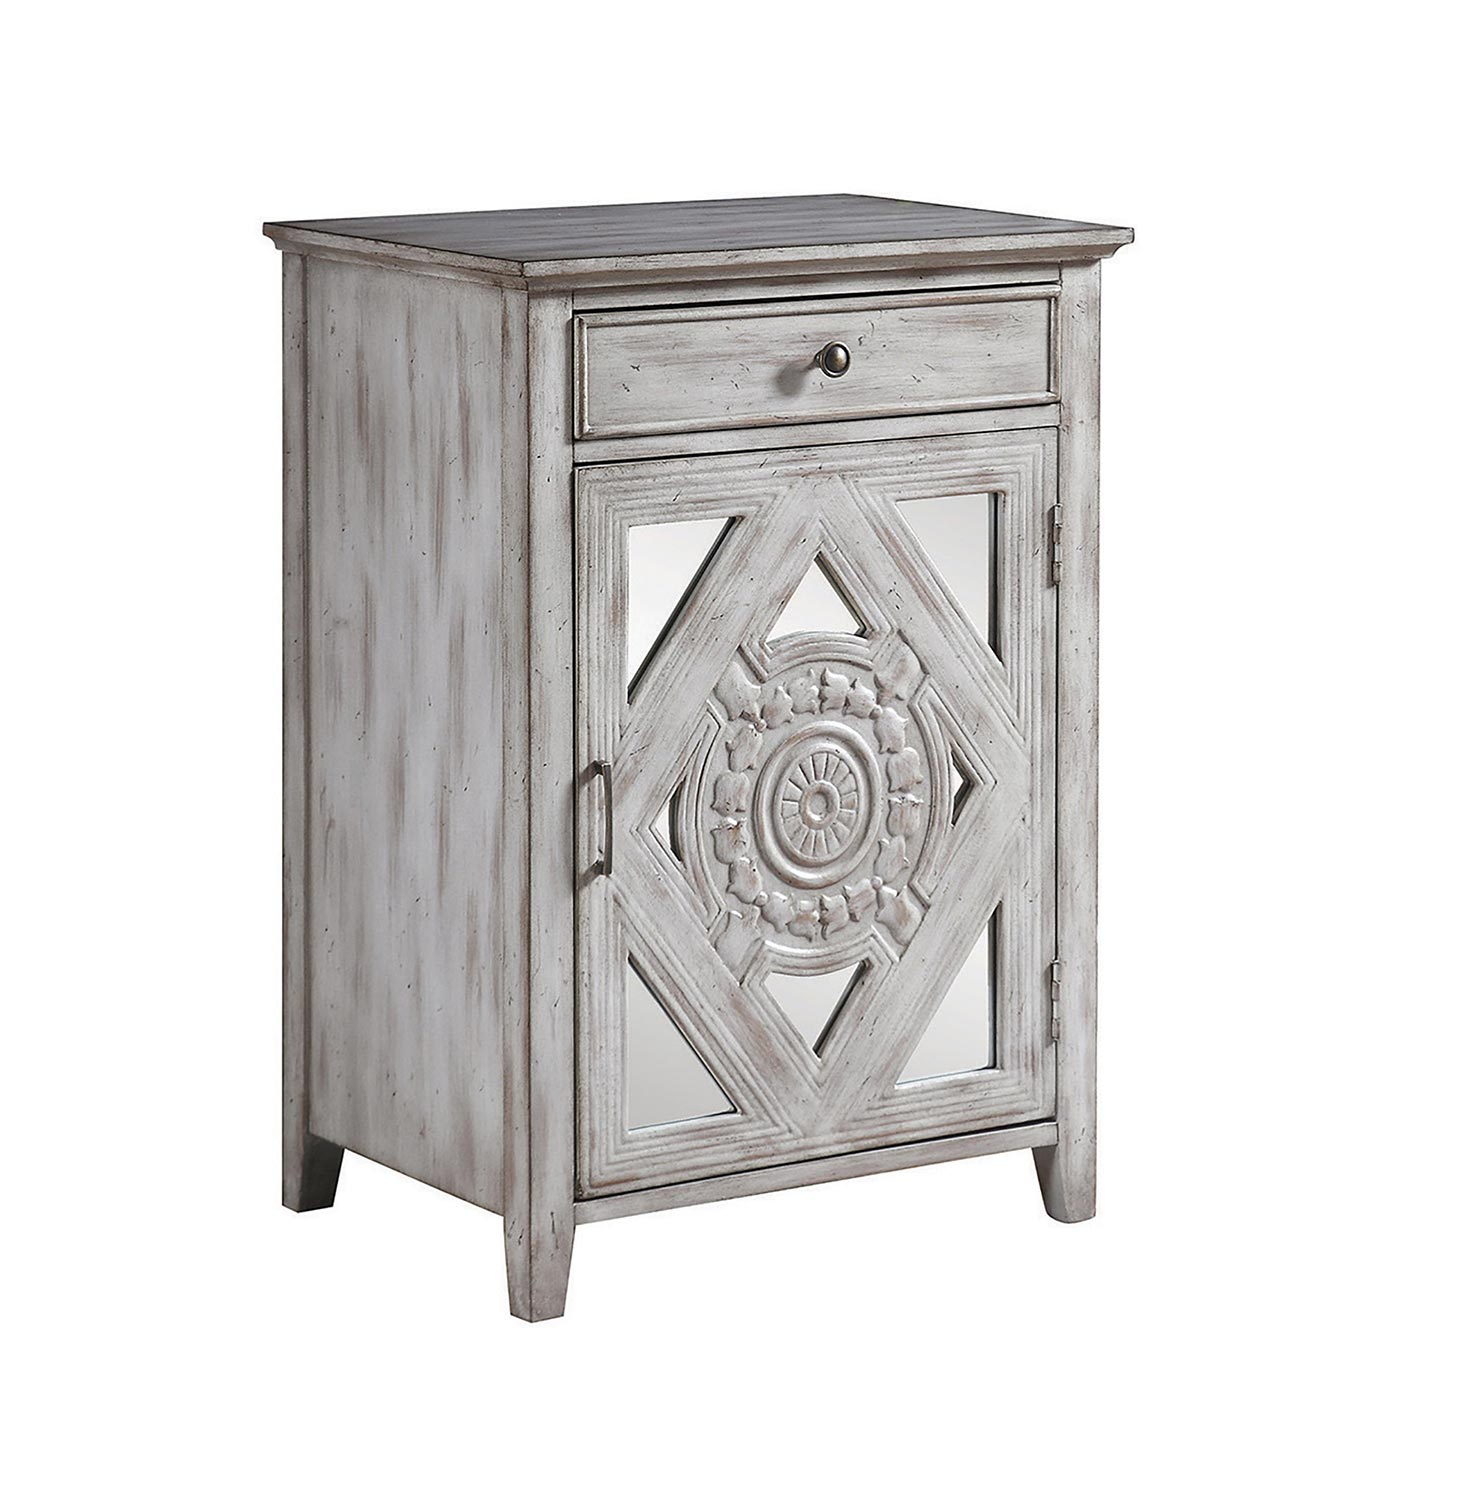 Coaster 950753 Accent Cabinet - Distressed Grey